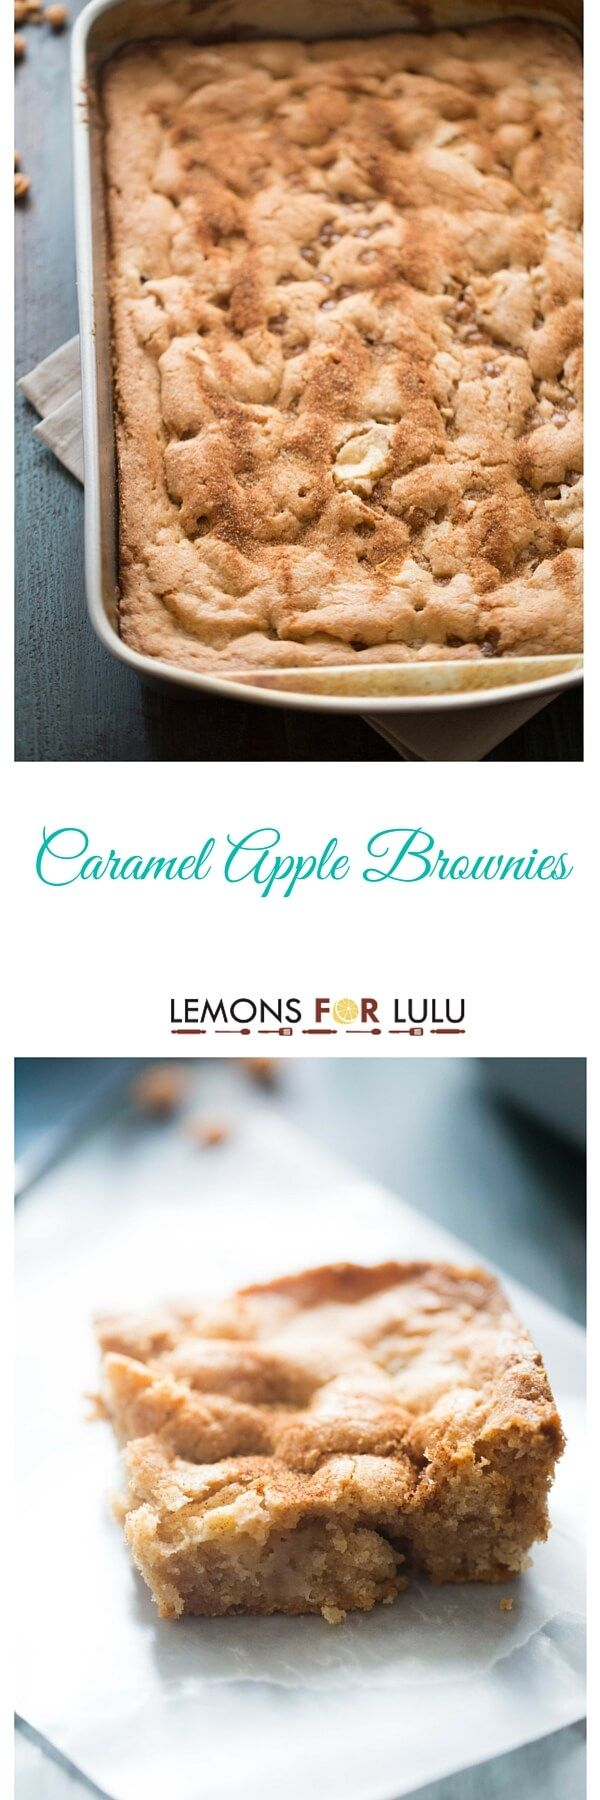 Blondes do have more fun, especially if they are brownies! These caramel apple brownies are soft, tender and subtly sweet! lemonsforlulu.com